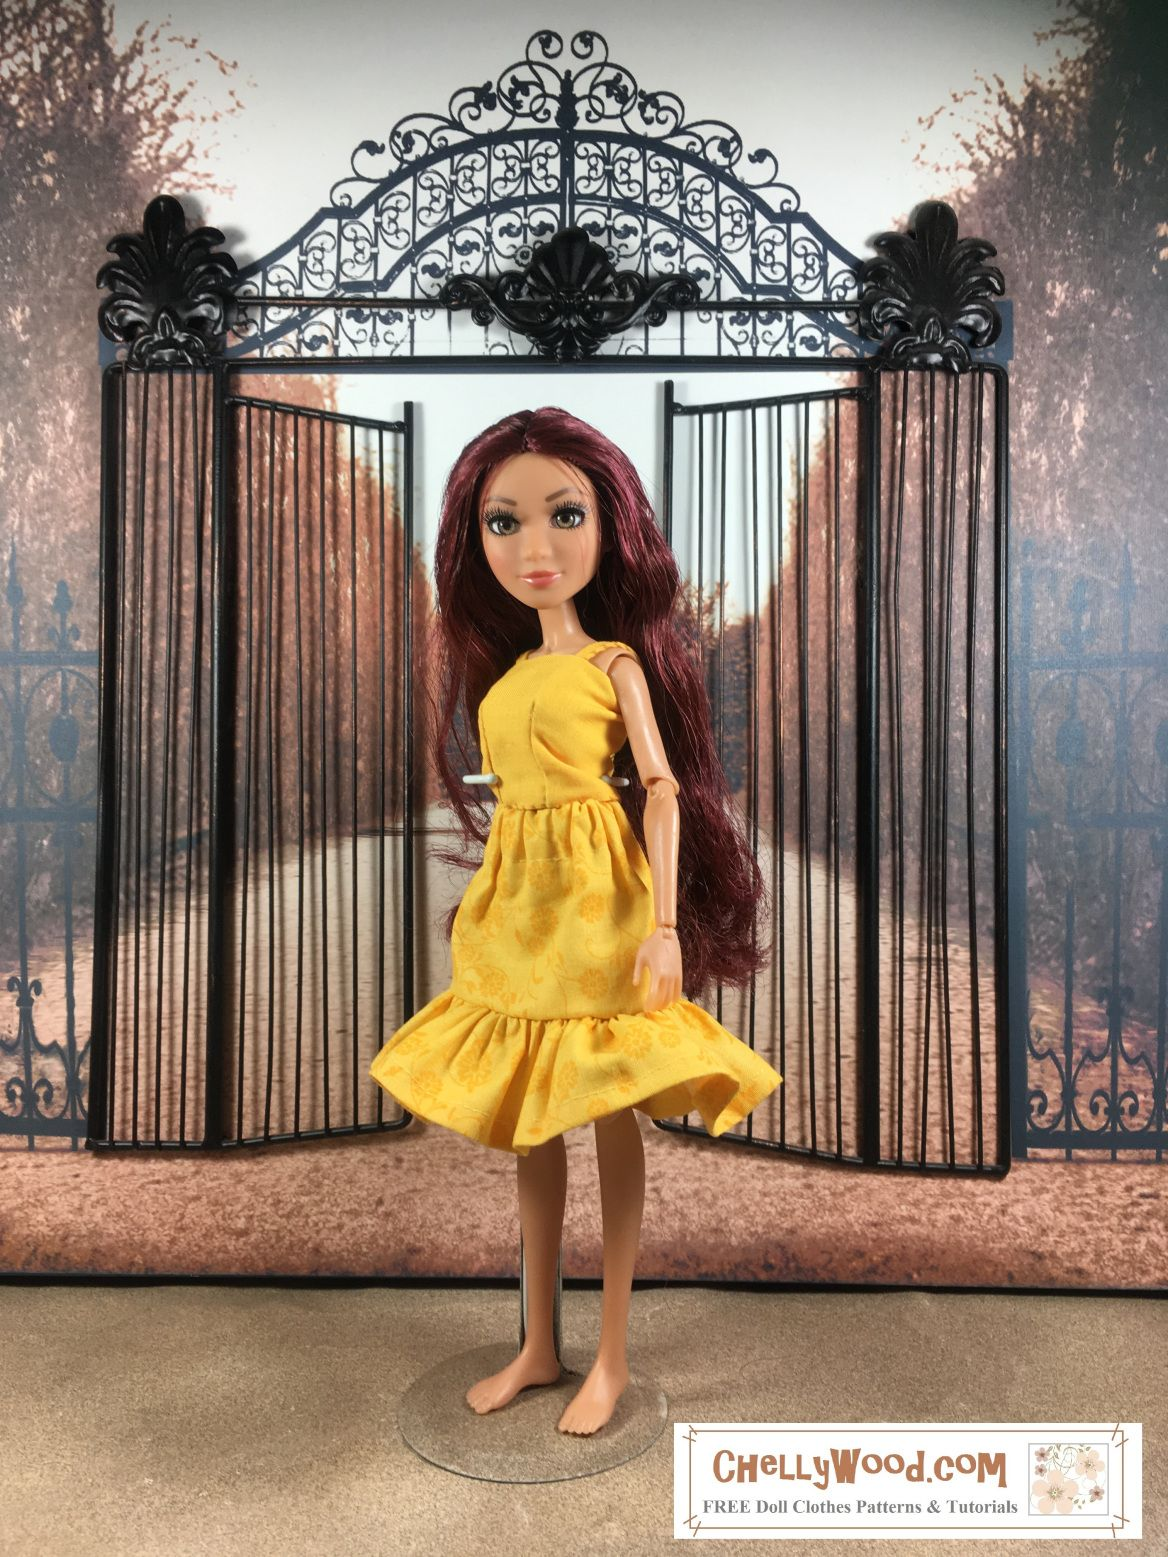 Please visit chellywood for free printable sewing patterns please visit chellywood for free printable sewing patterns for dolls of many shapes and sizes image shows project mc2 doll wearing a sunny yellow jeuxipadfo Gallery